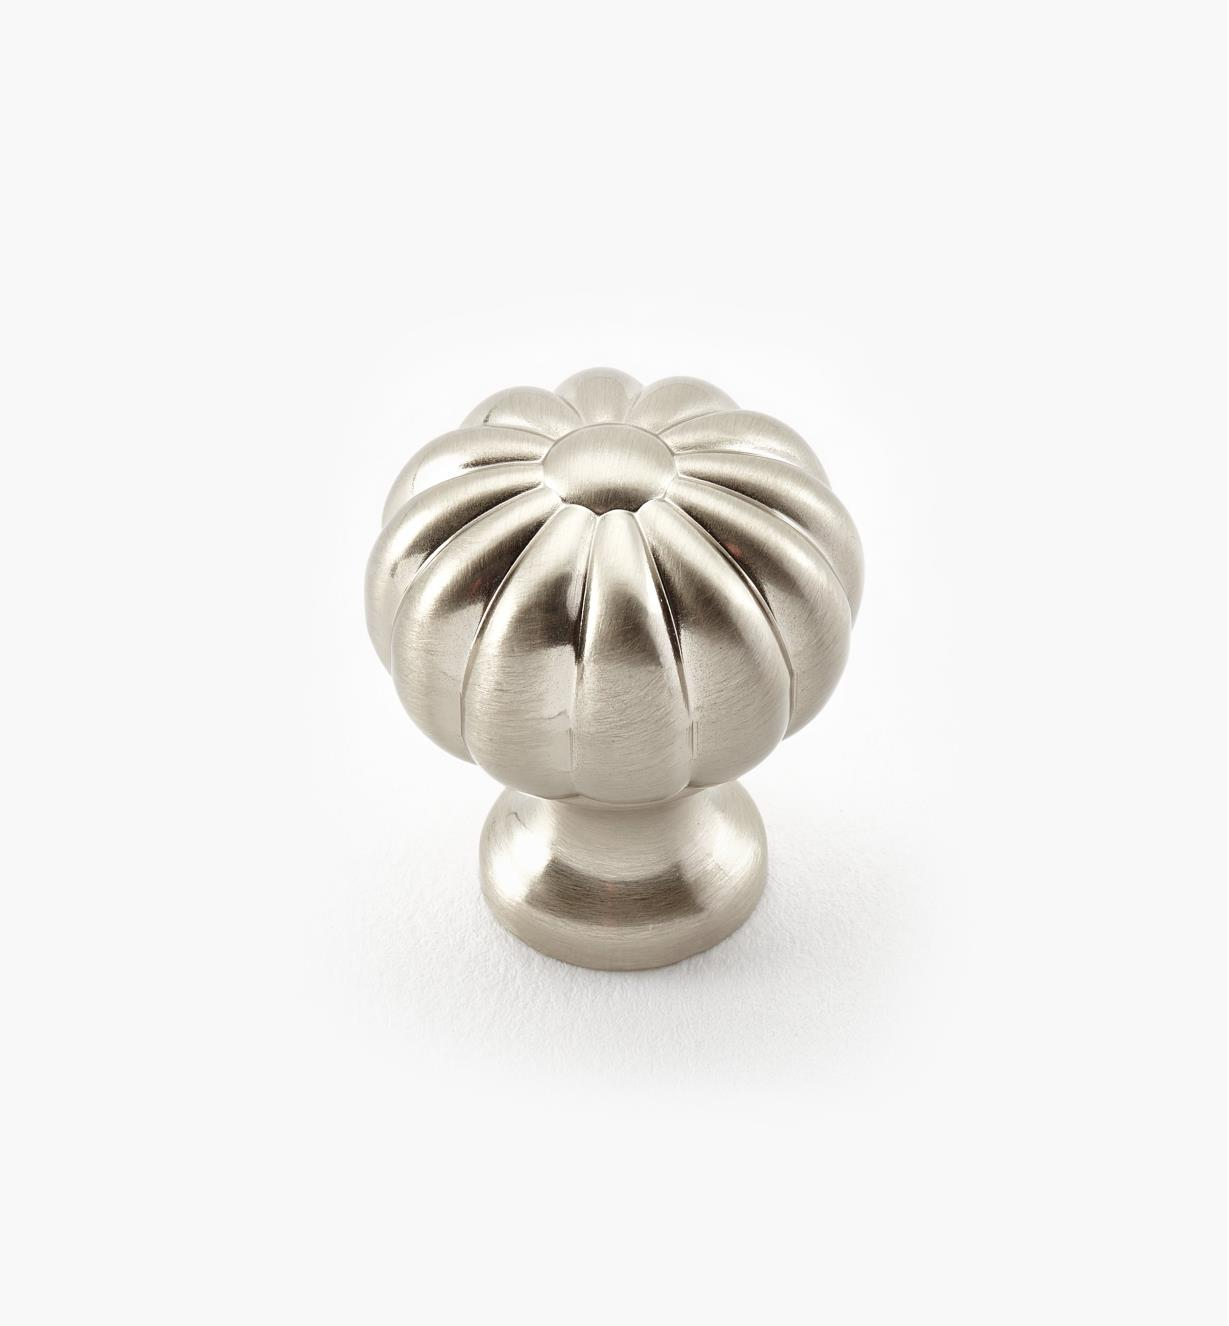 03W1515 - 24mm Pumpkin Knob, ea.